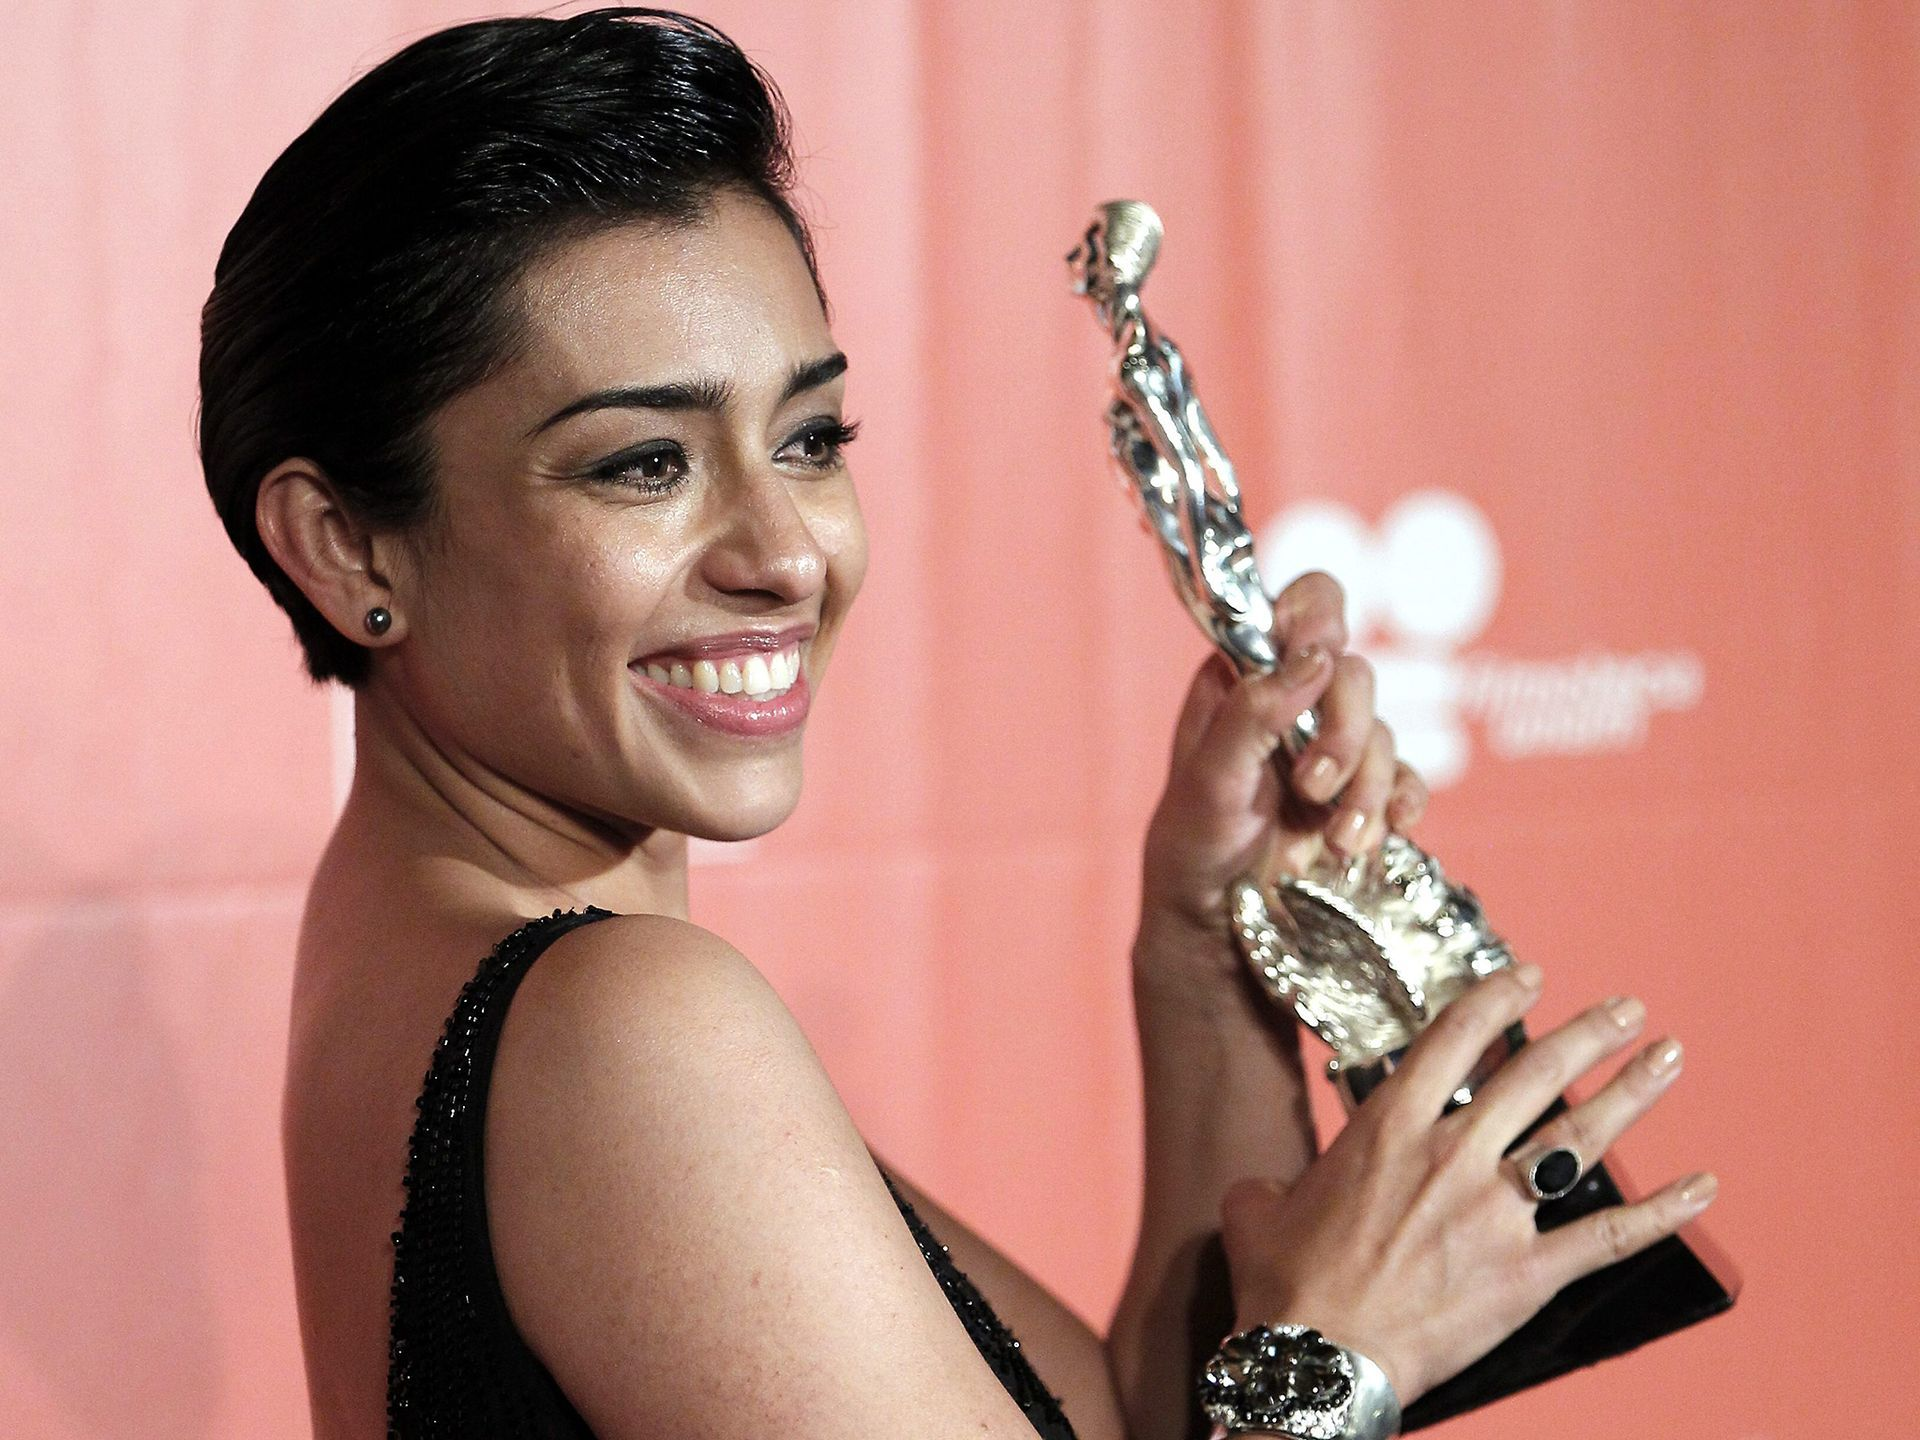 Adriana paz shows off her award after winning best actress during adriana paz shows off her award after winning best actress during the 57th ariel awards in mexico city jose mendez european pressphoto agency fandeluxe Choice Image